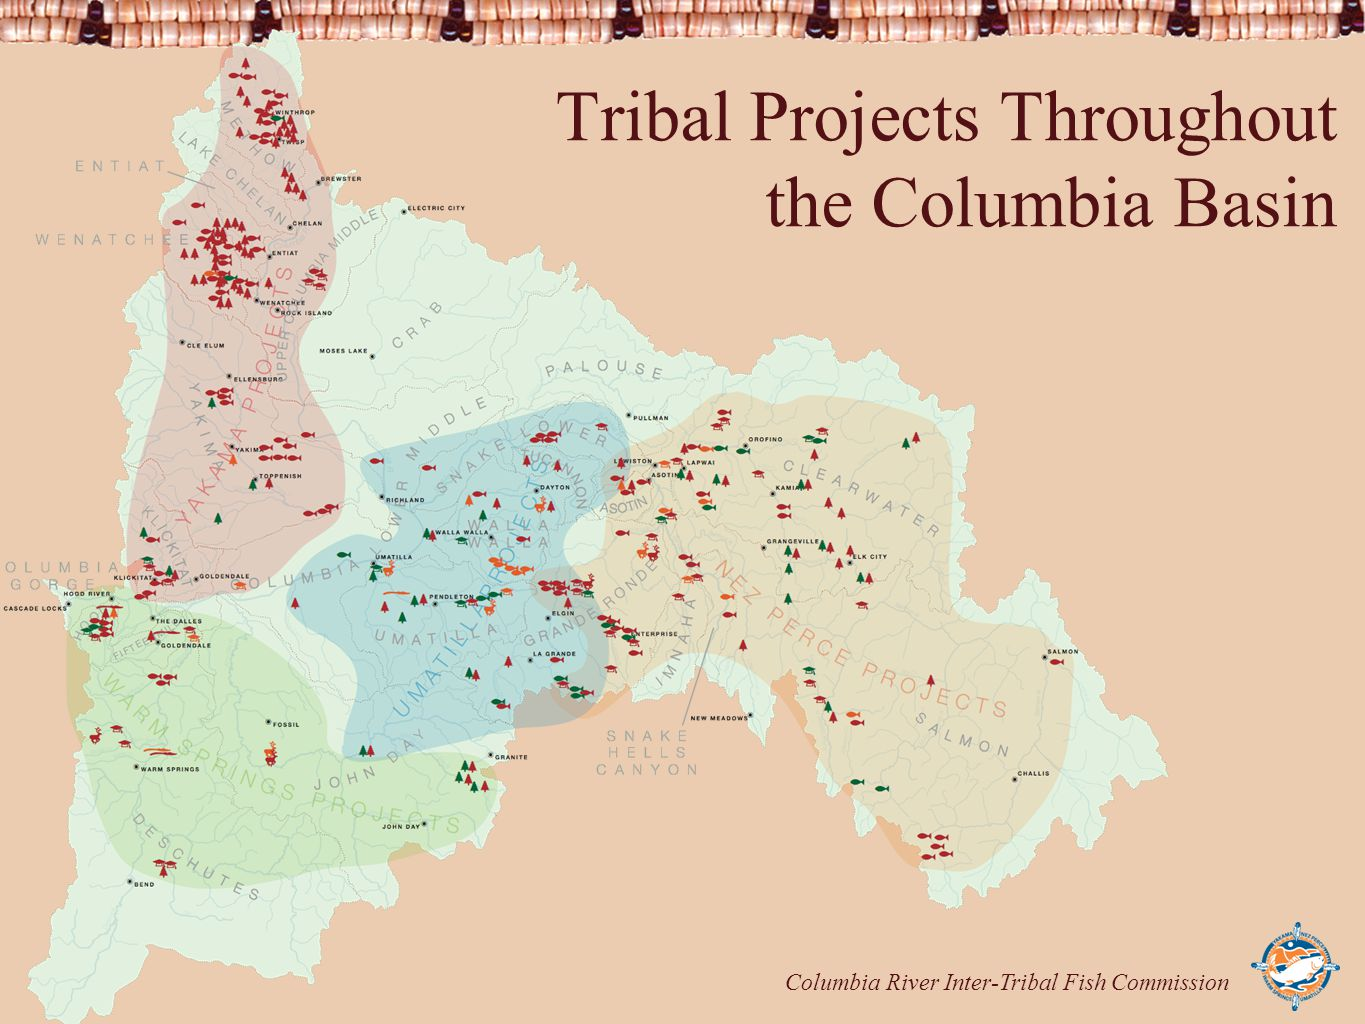 Columbia River Inter-Tribal Fish Commission Tribal Projects Throughout the Columbia Basin